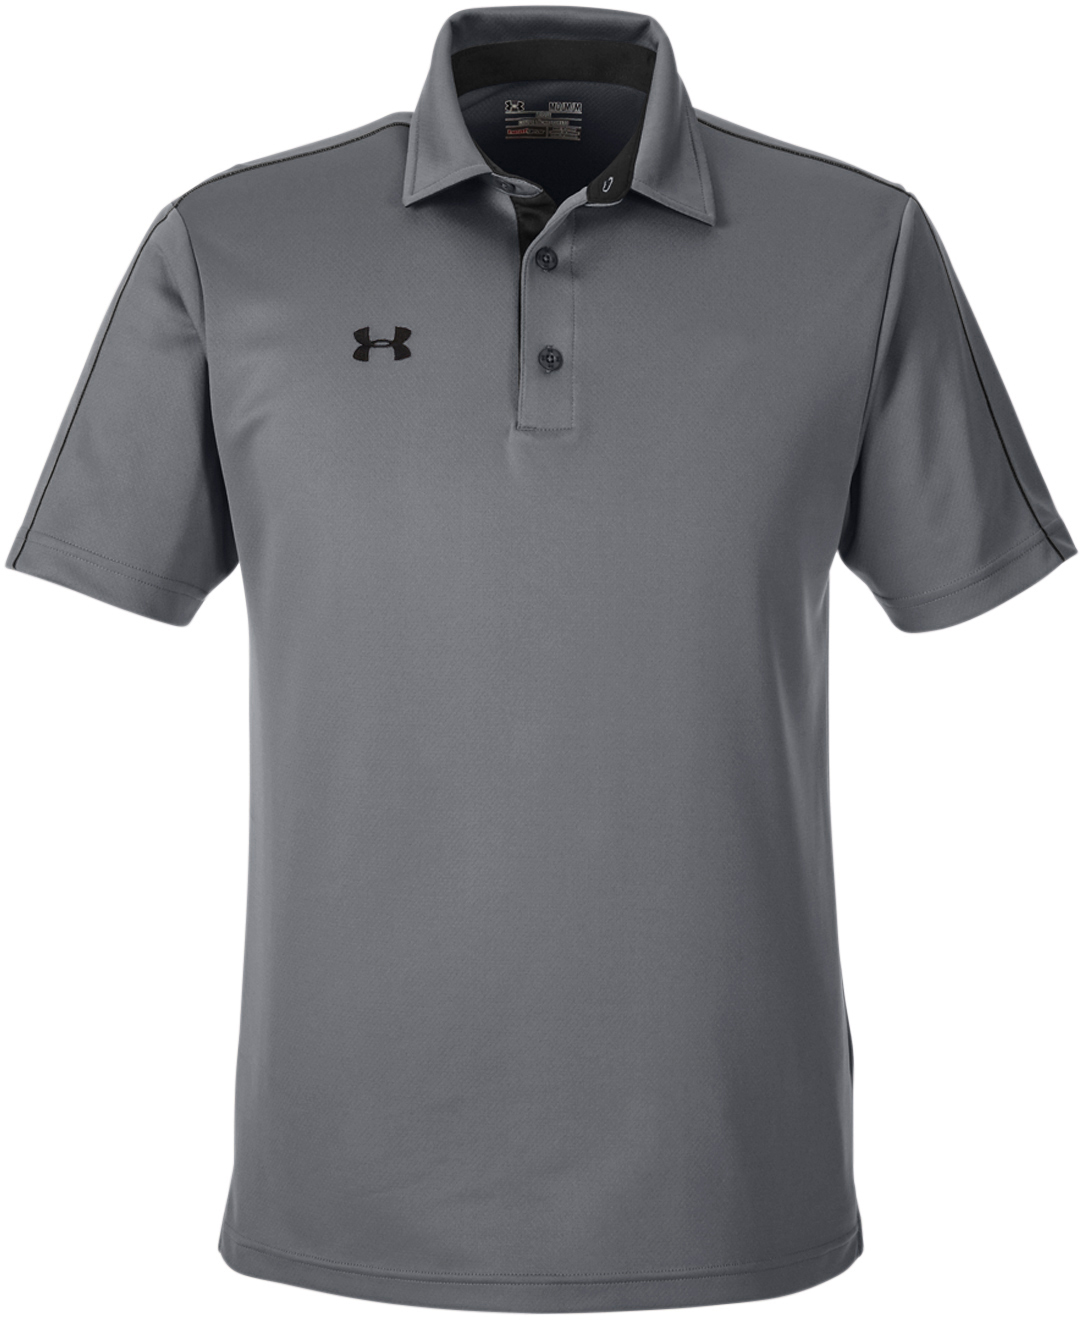 Under armour men 39 s corporate tech polo for Under armor business shirts